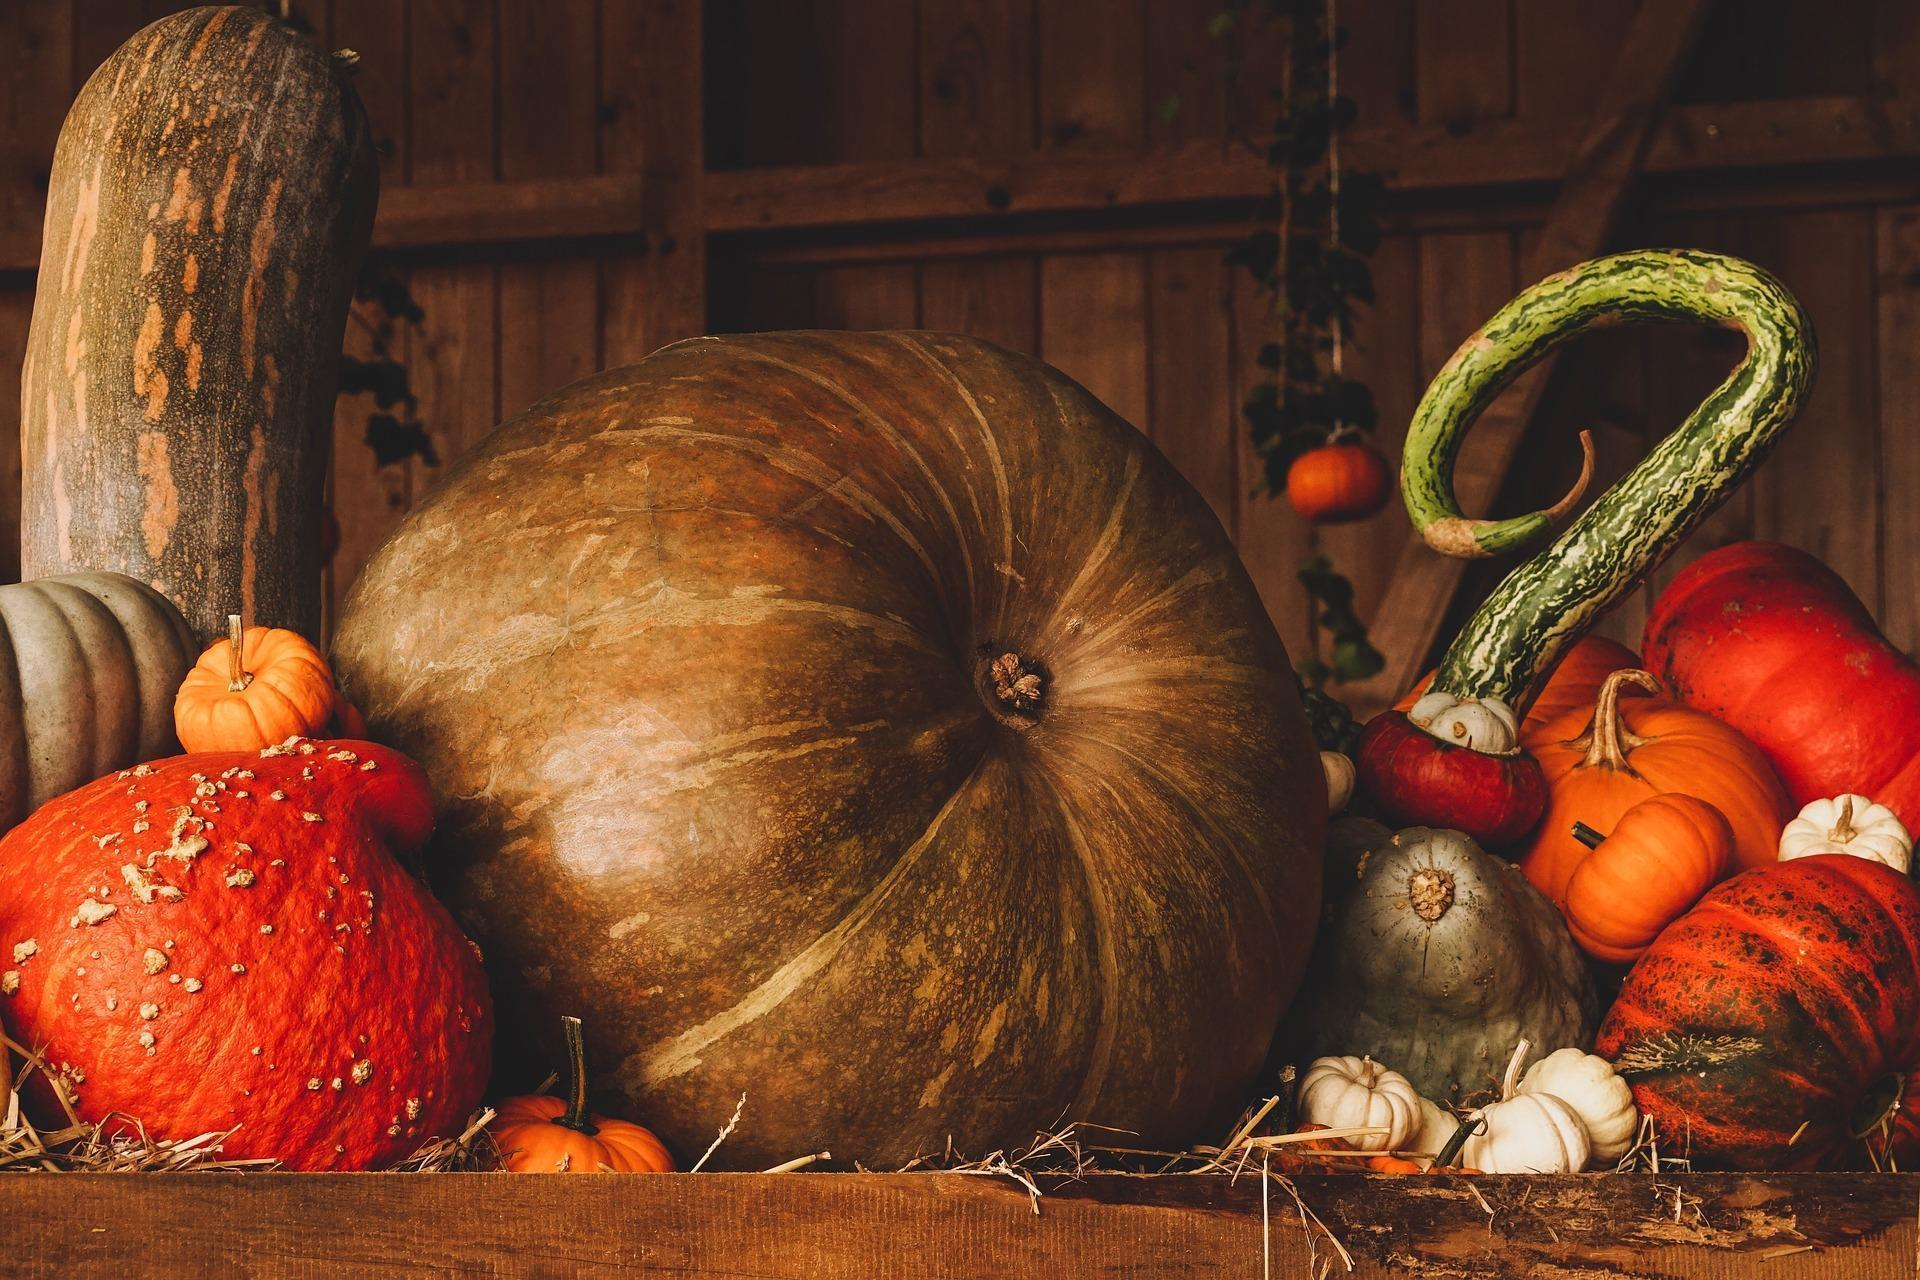 Pumpkins and Squash Still Life